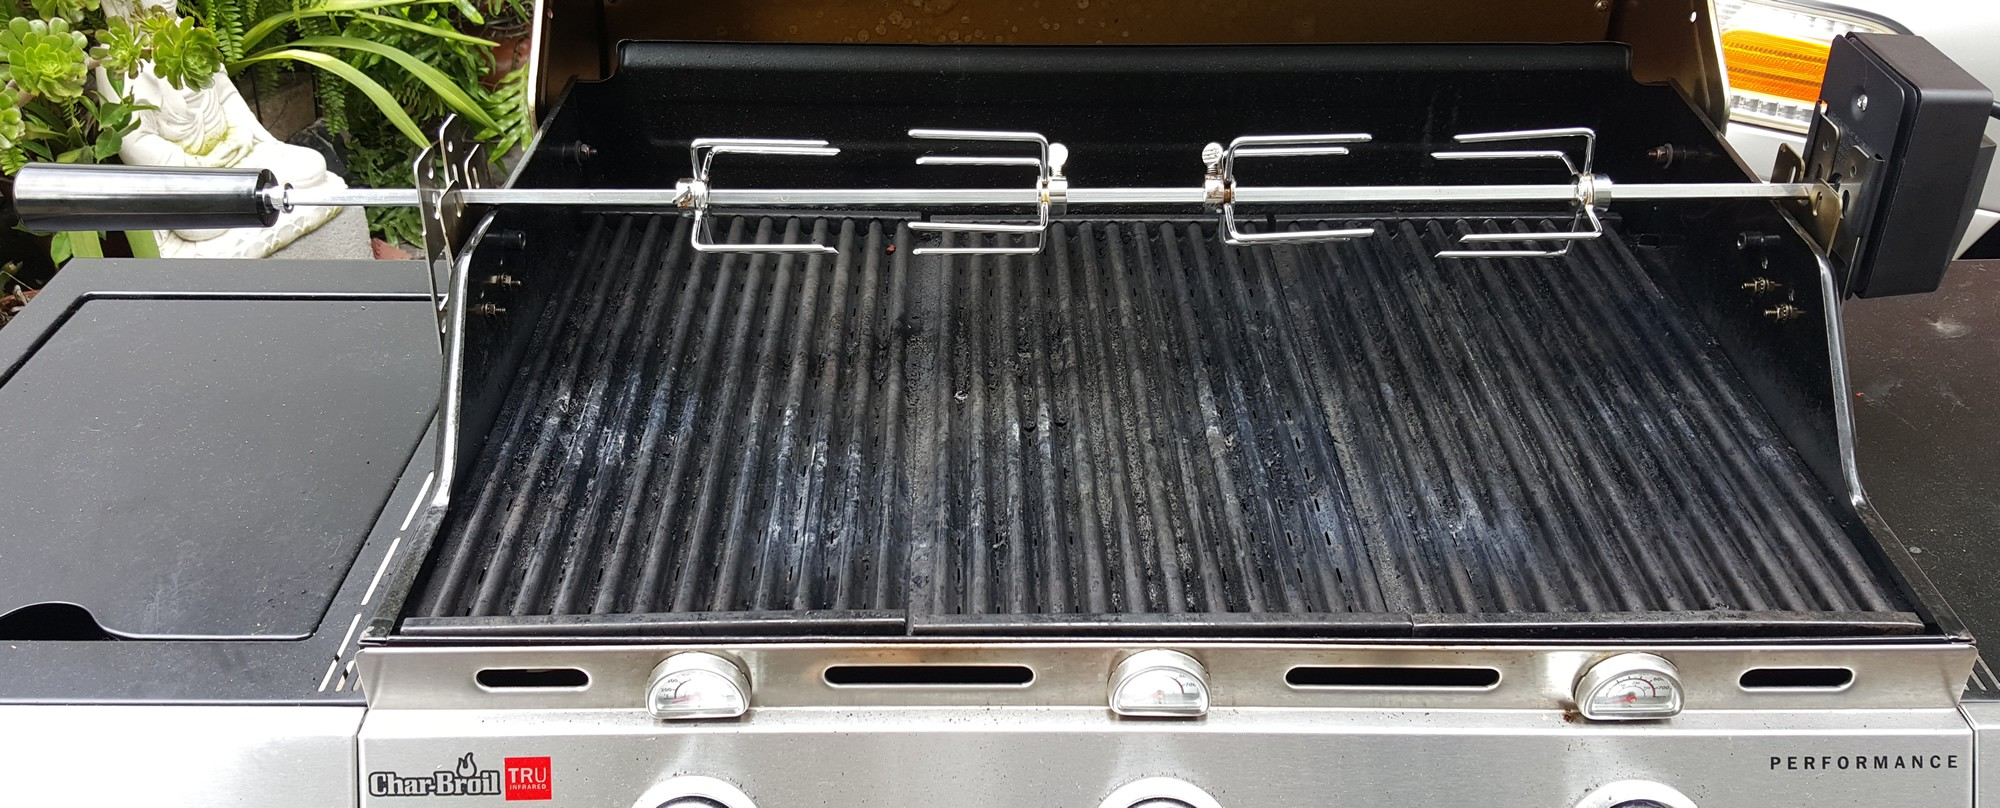 Review Pimping My Char Broil Tru Infrared Grill With A